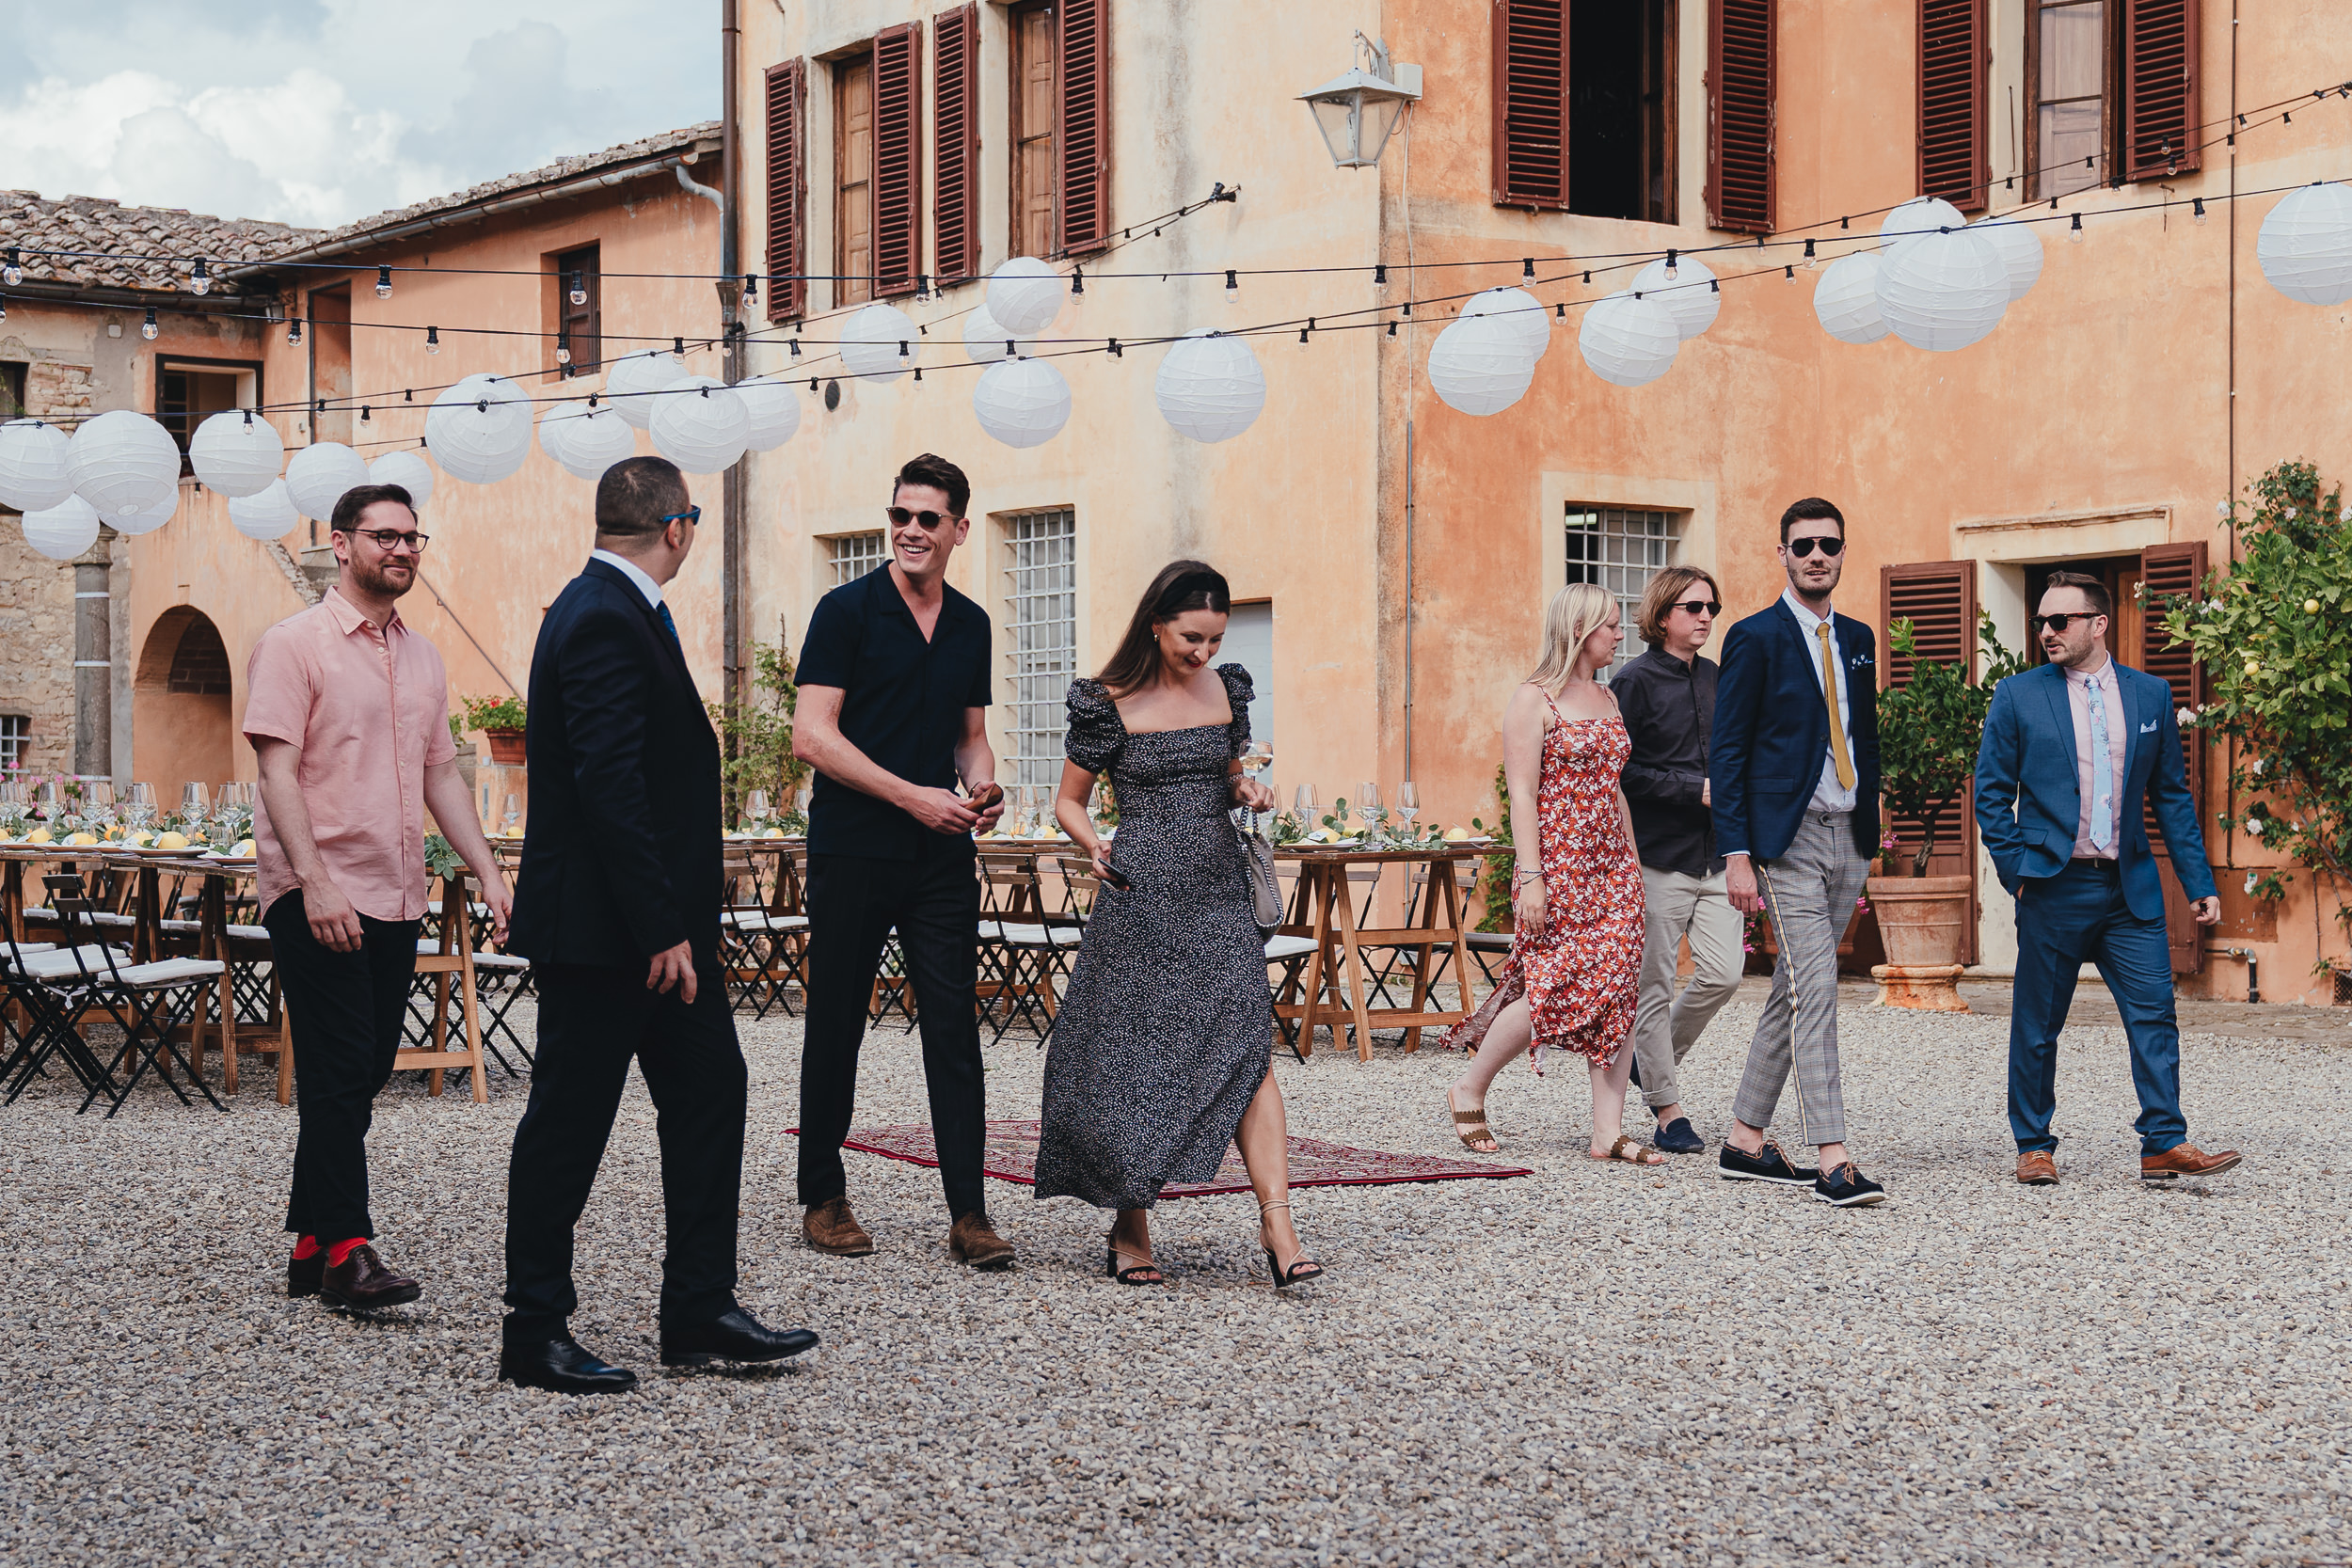 Tuscan Villa Wedding - Wedding guests arrive at Villa Catignano